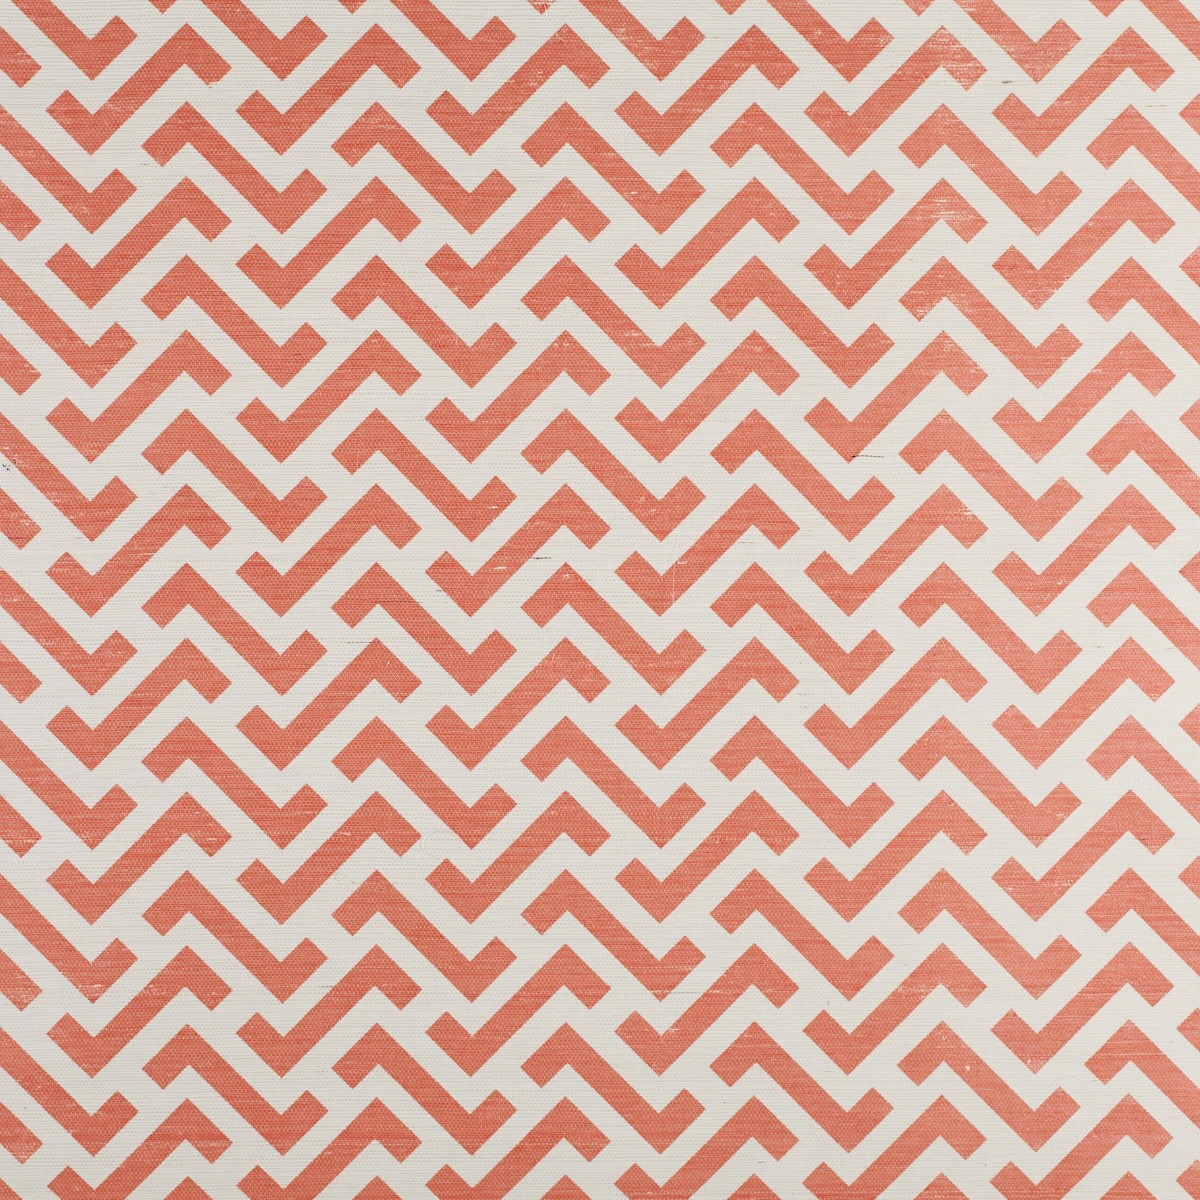 Home View All Colours PINK Block Zig Zag Sisal Wallpaper 1200x1200